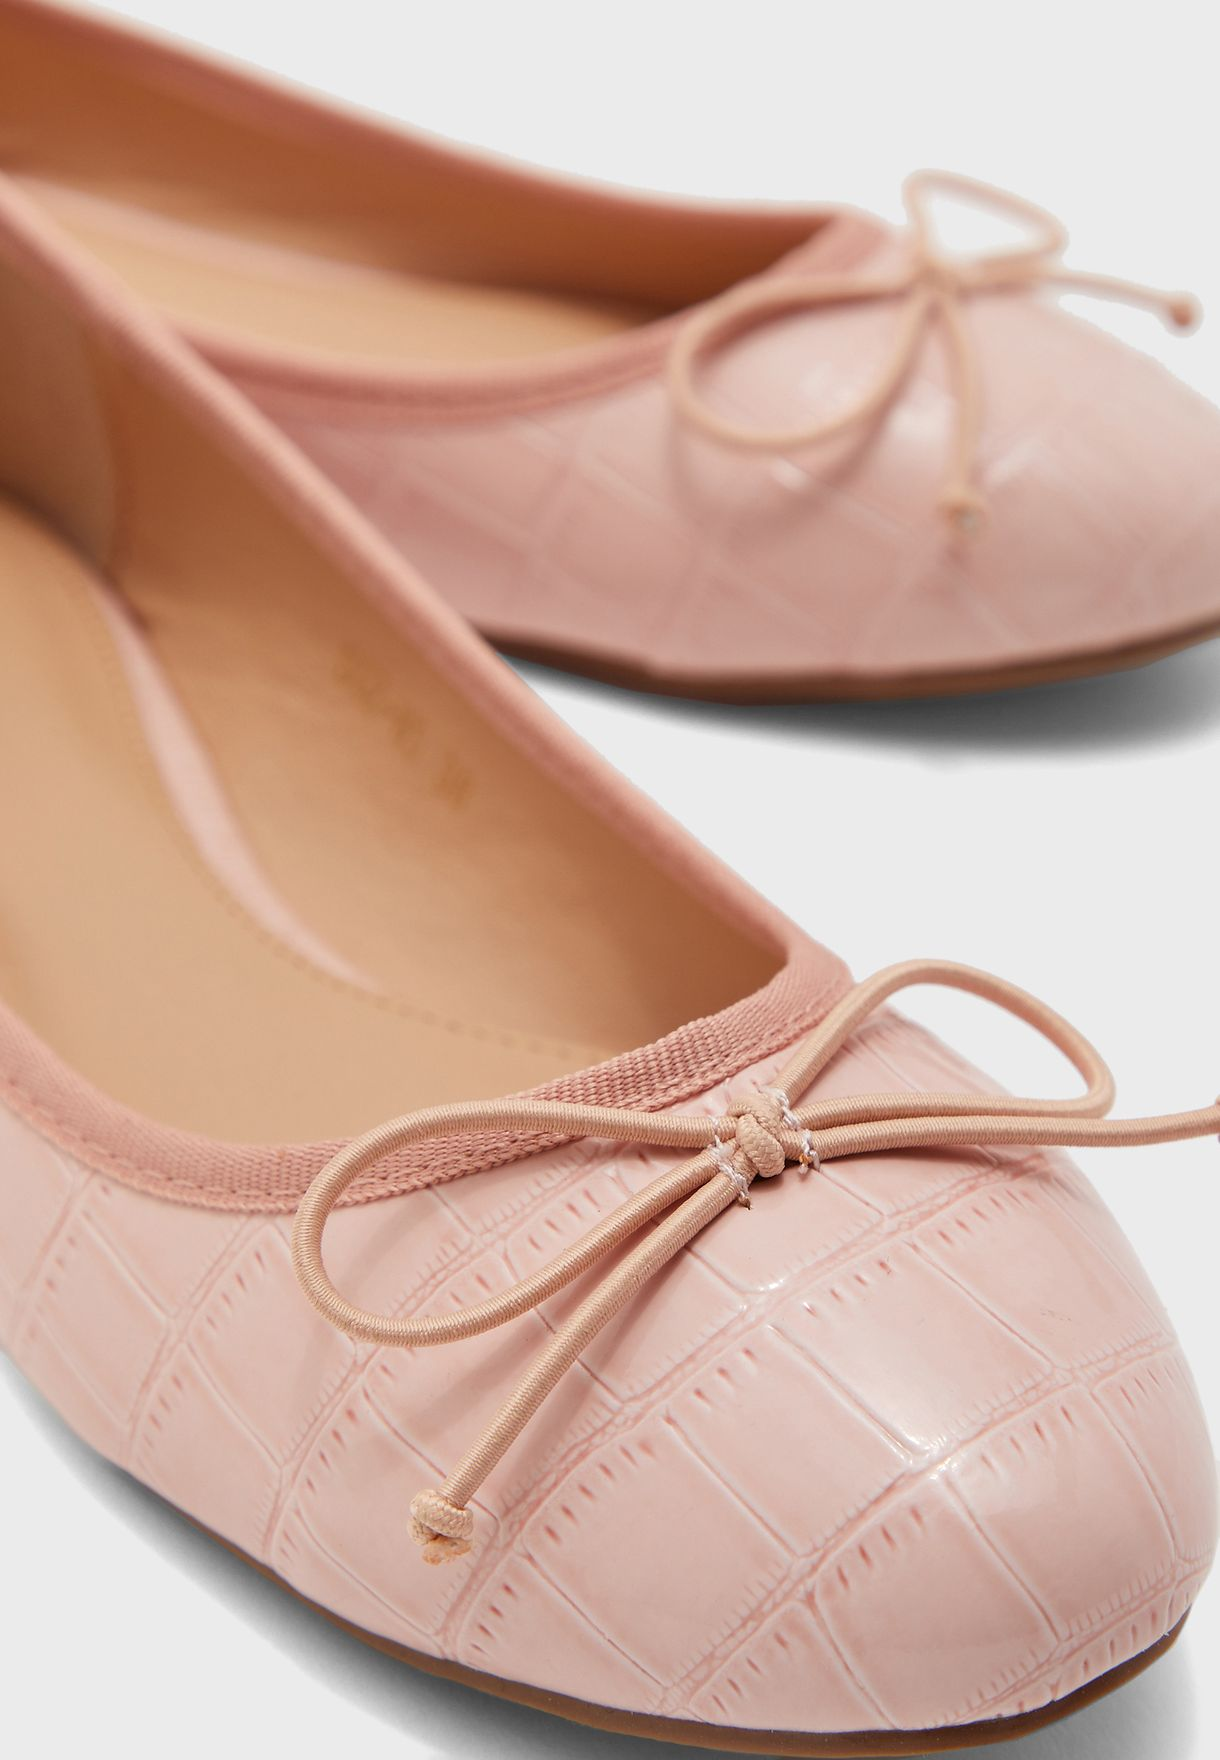 Ginger Ballerinas - Brand Shoes